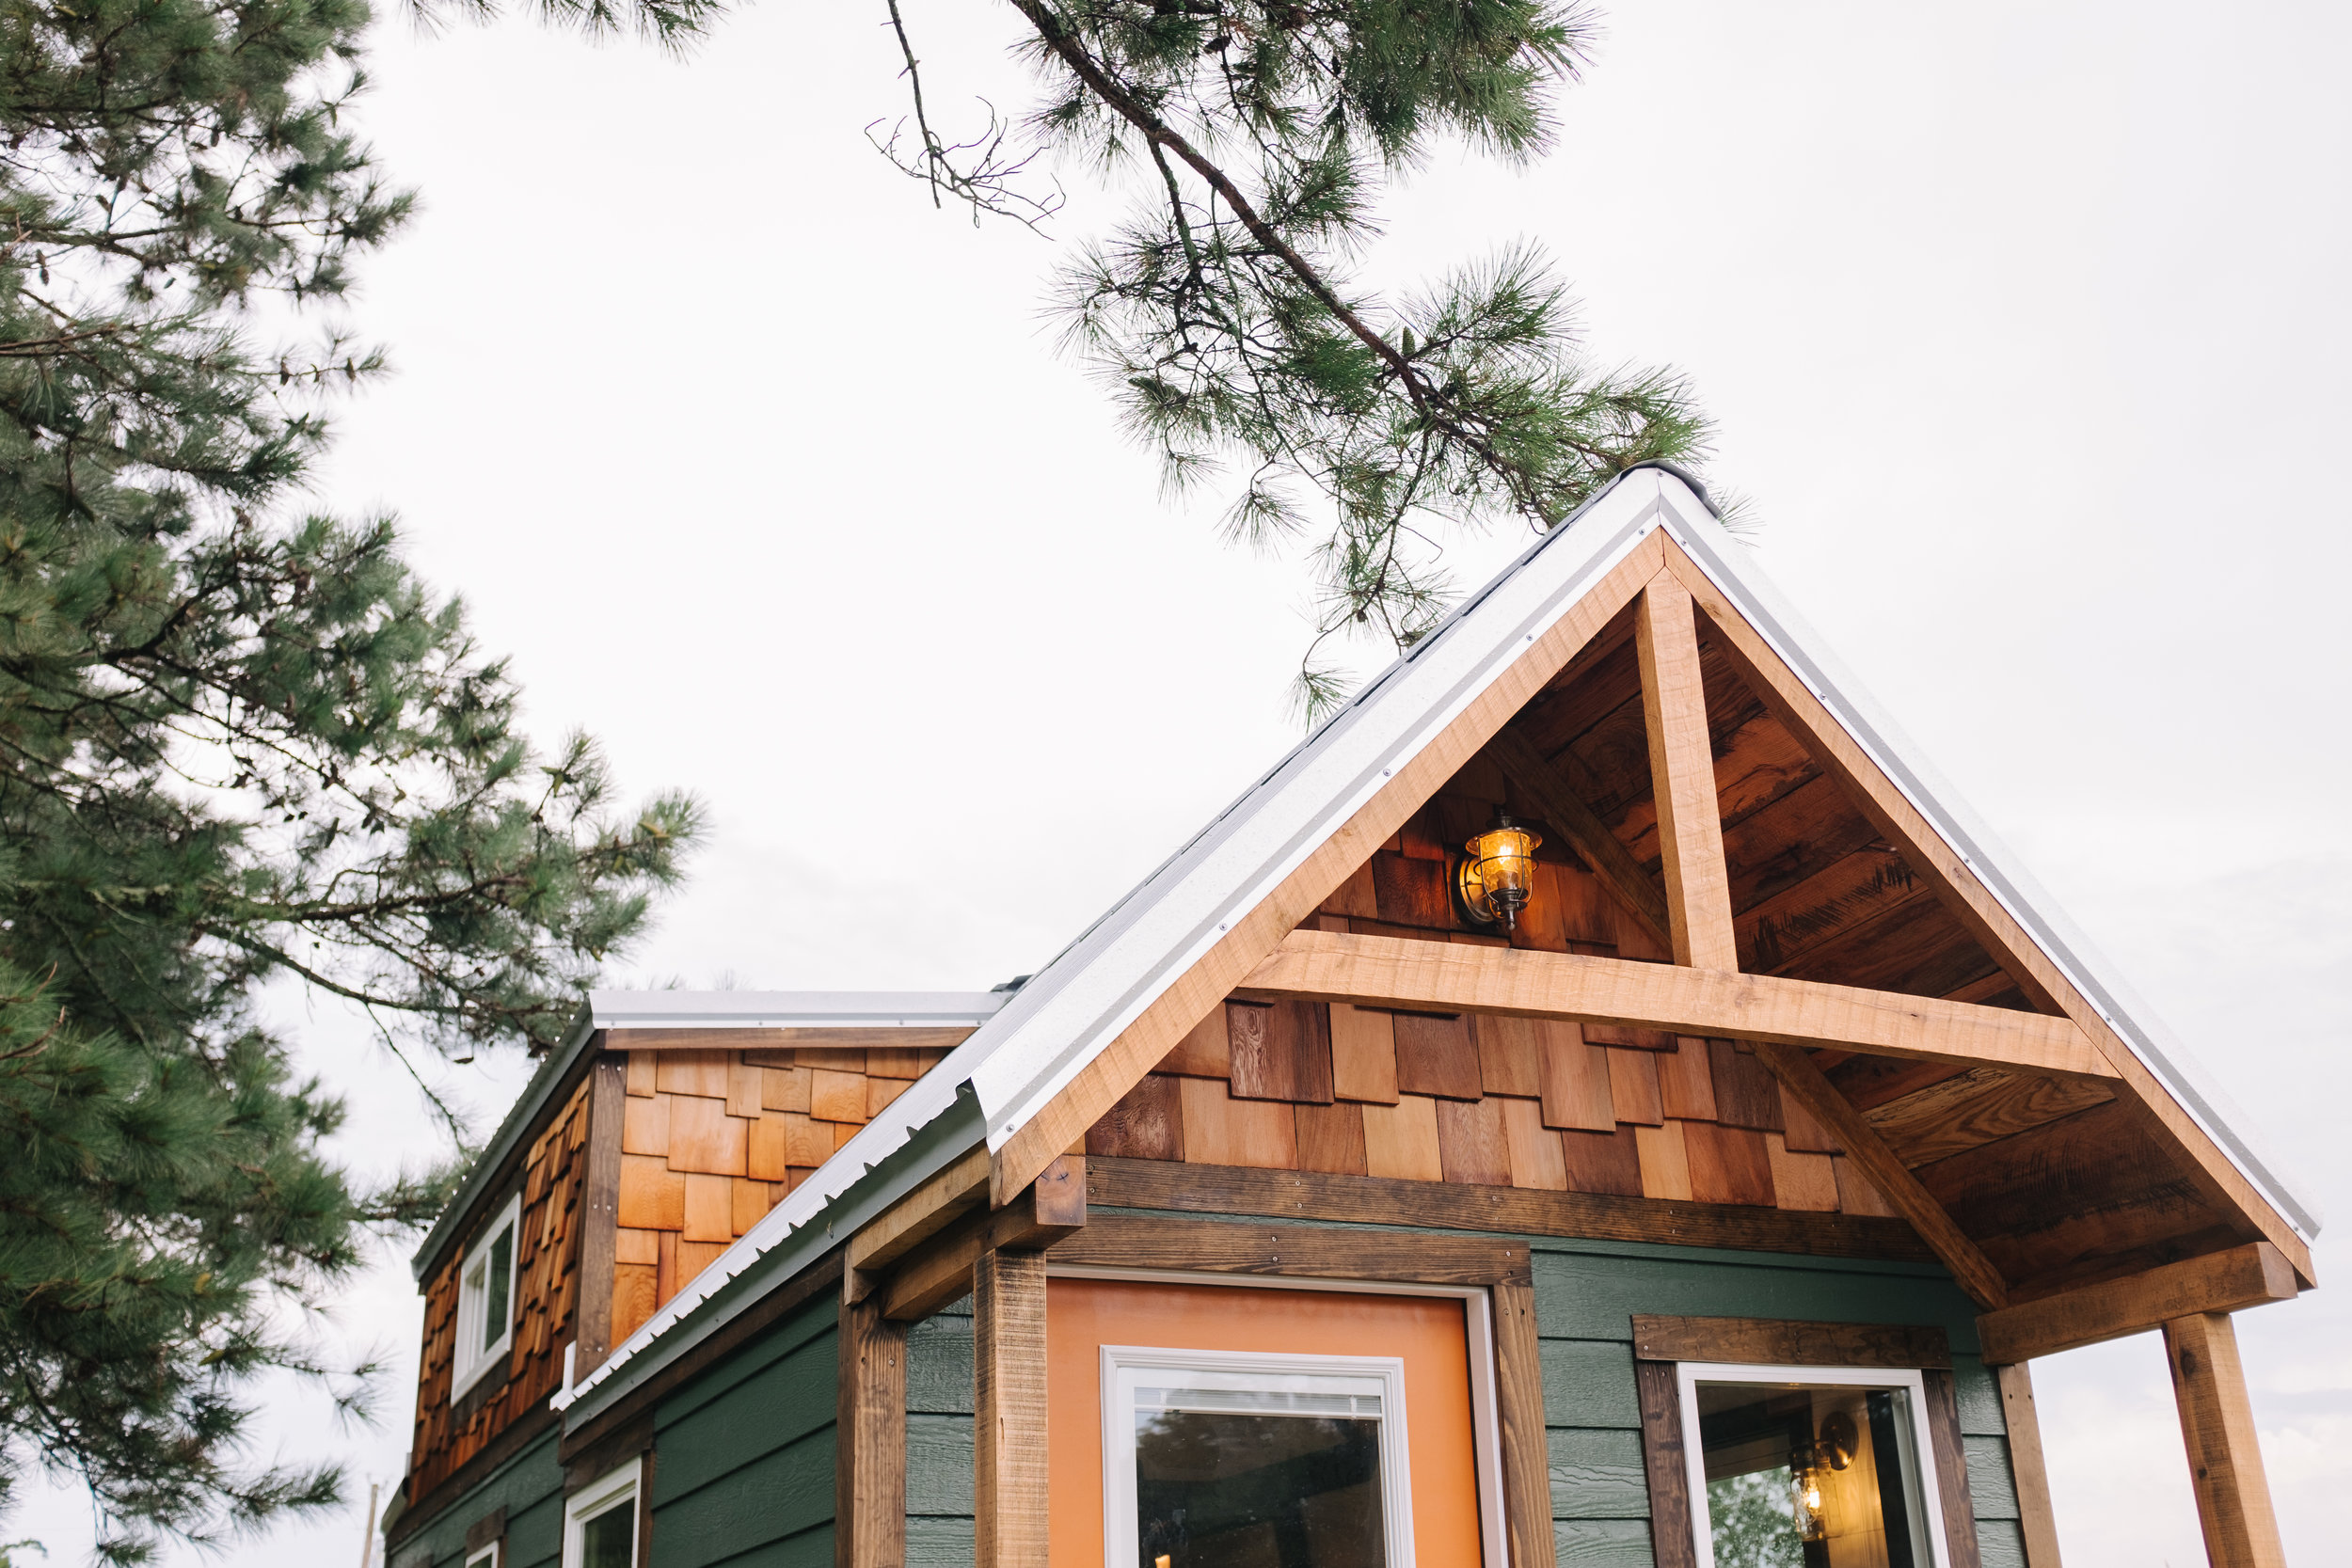 The Acadia by Wind River Tiny Homes - tiny house, craftsman home, cedar shake, rustic timber